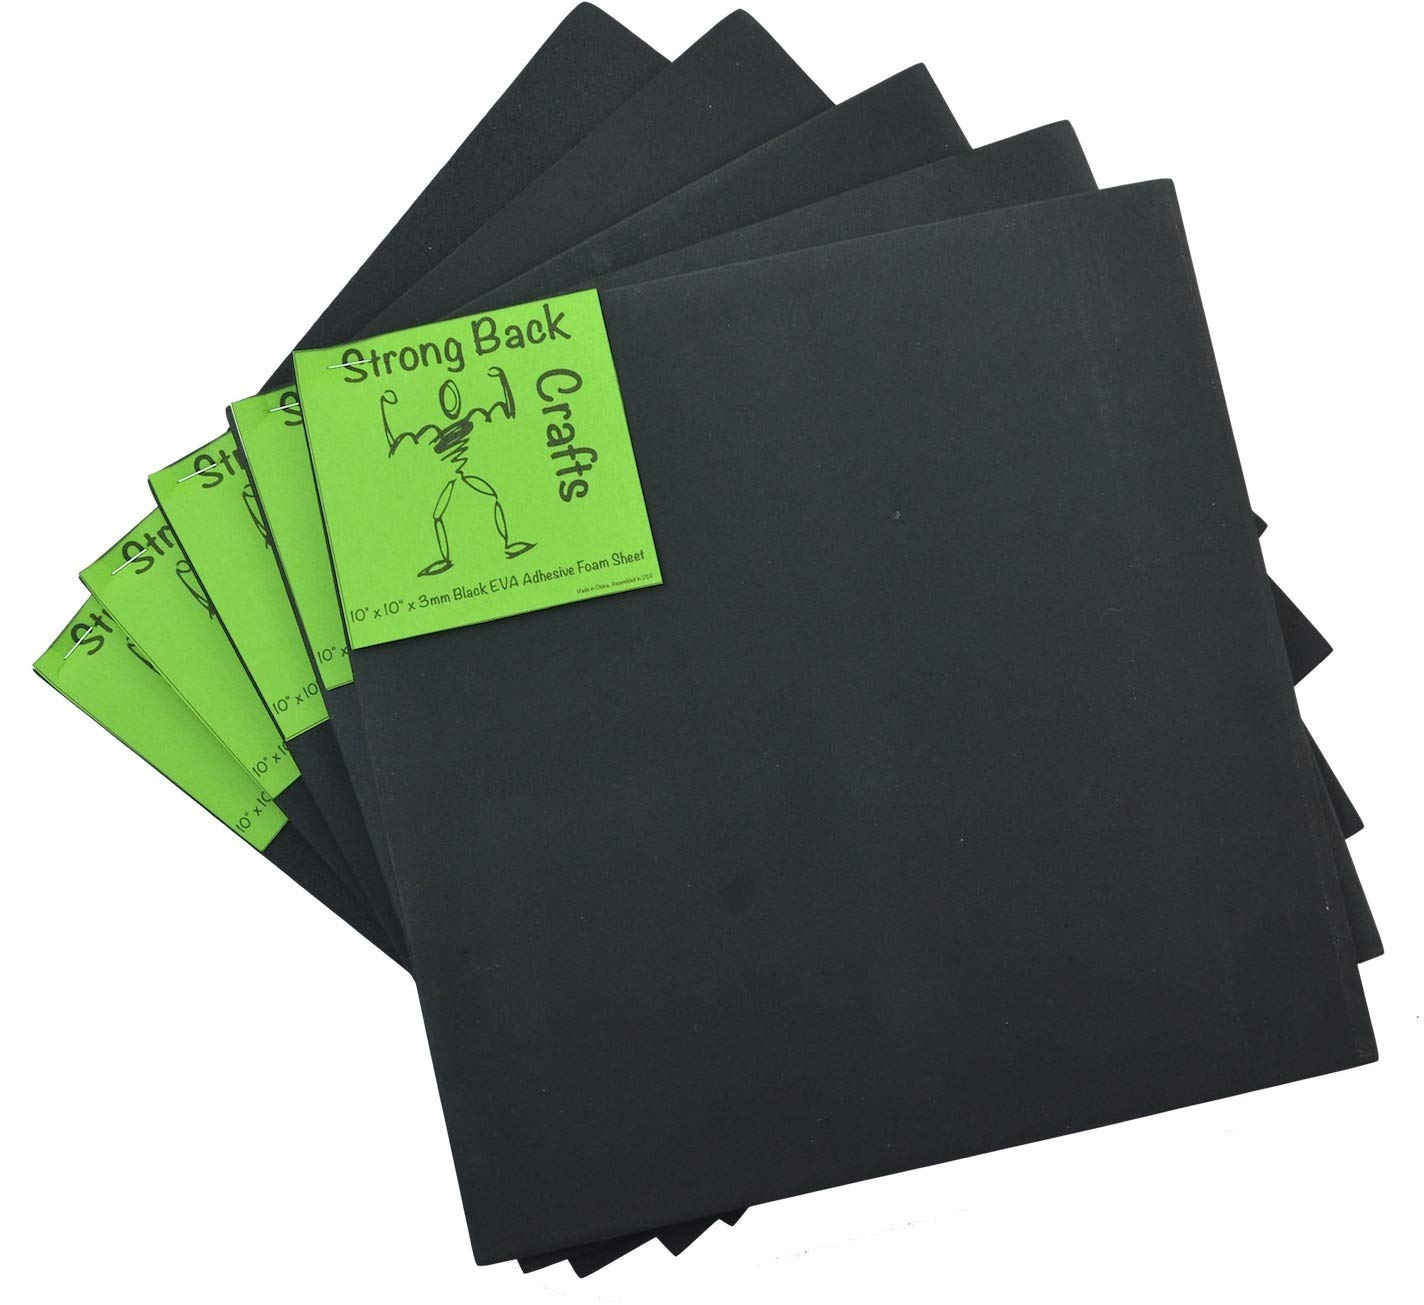 Black 6mm Thick (5 Pack)-Self-Stick Adhesive 9.5'' x 9.5'' EVA High Density Foam Sheets by Strong Back Crafts- Cosplay Materials, Costumes, Cushioning, Seats, Dog Traction, Scrapbooking